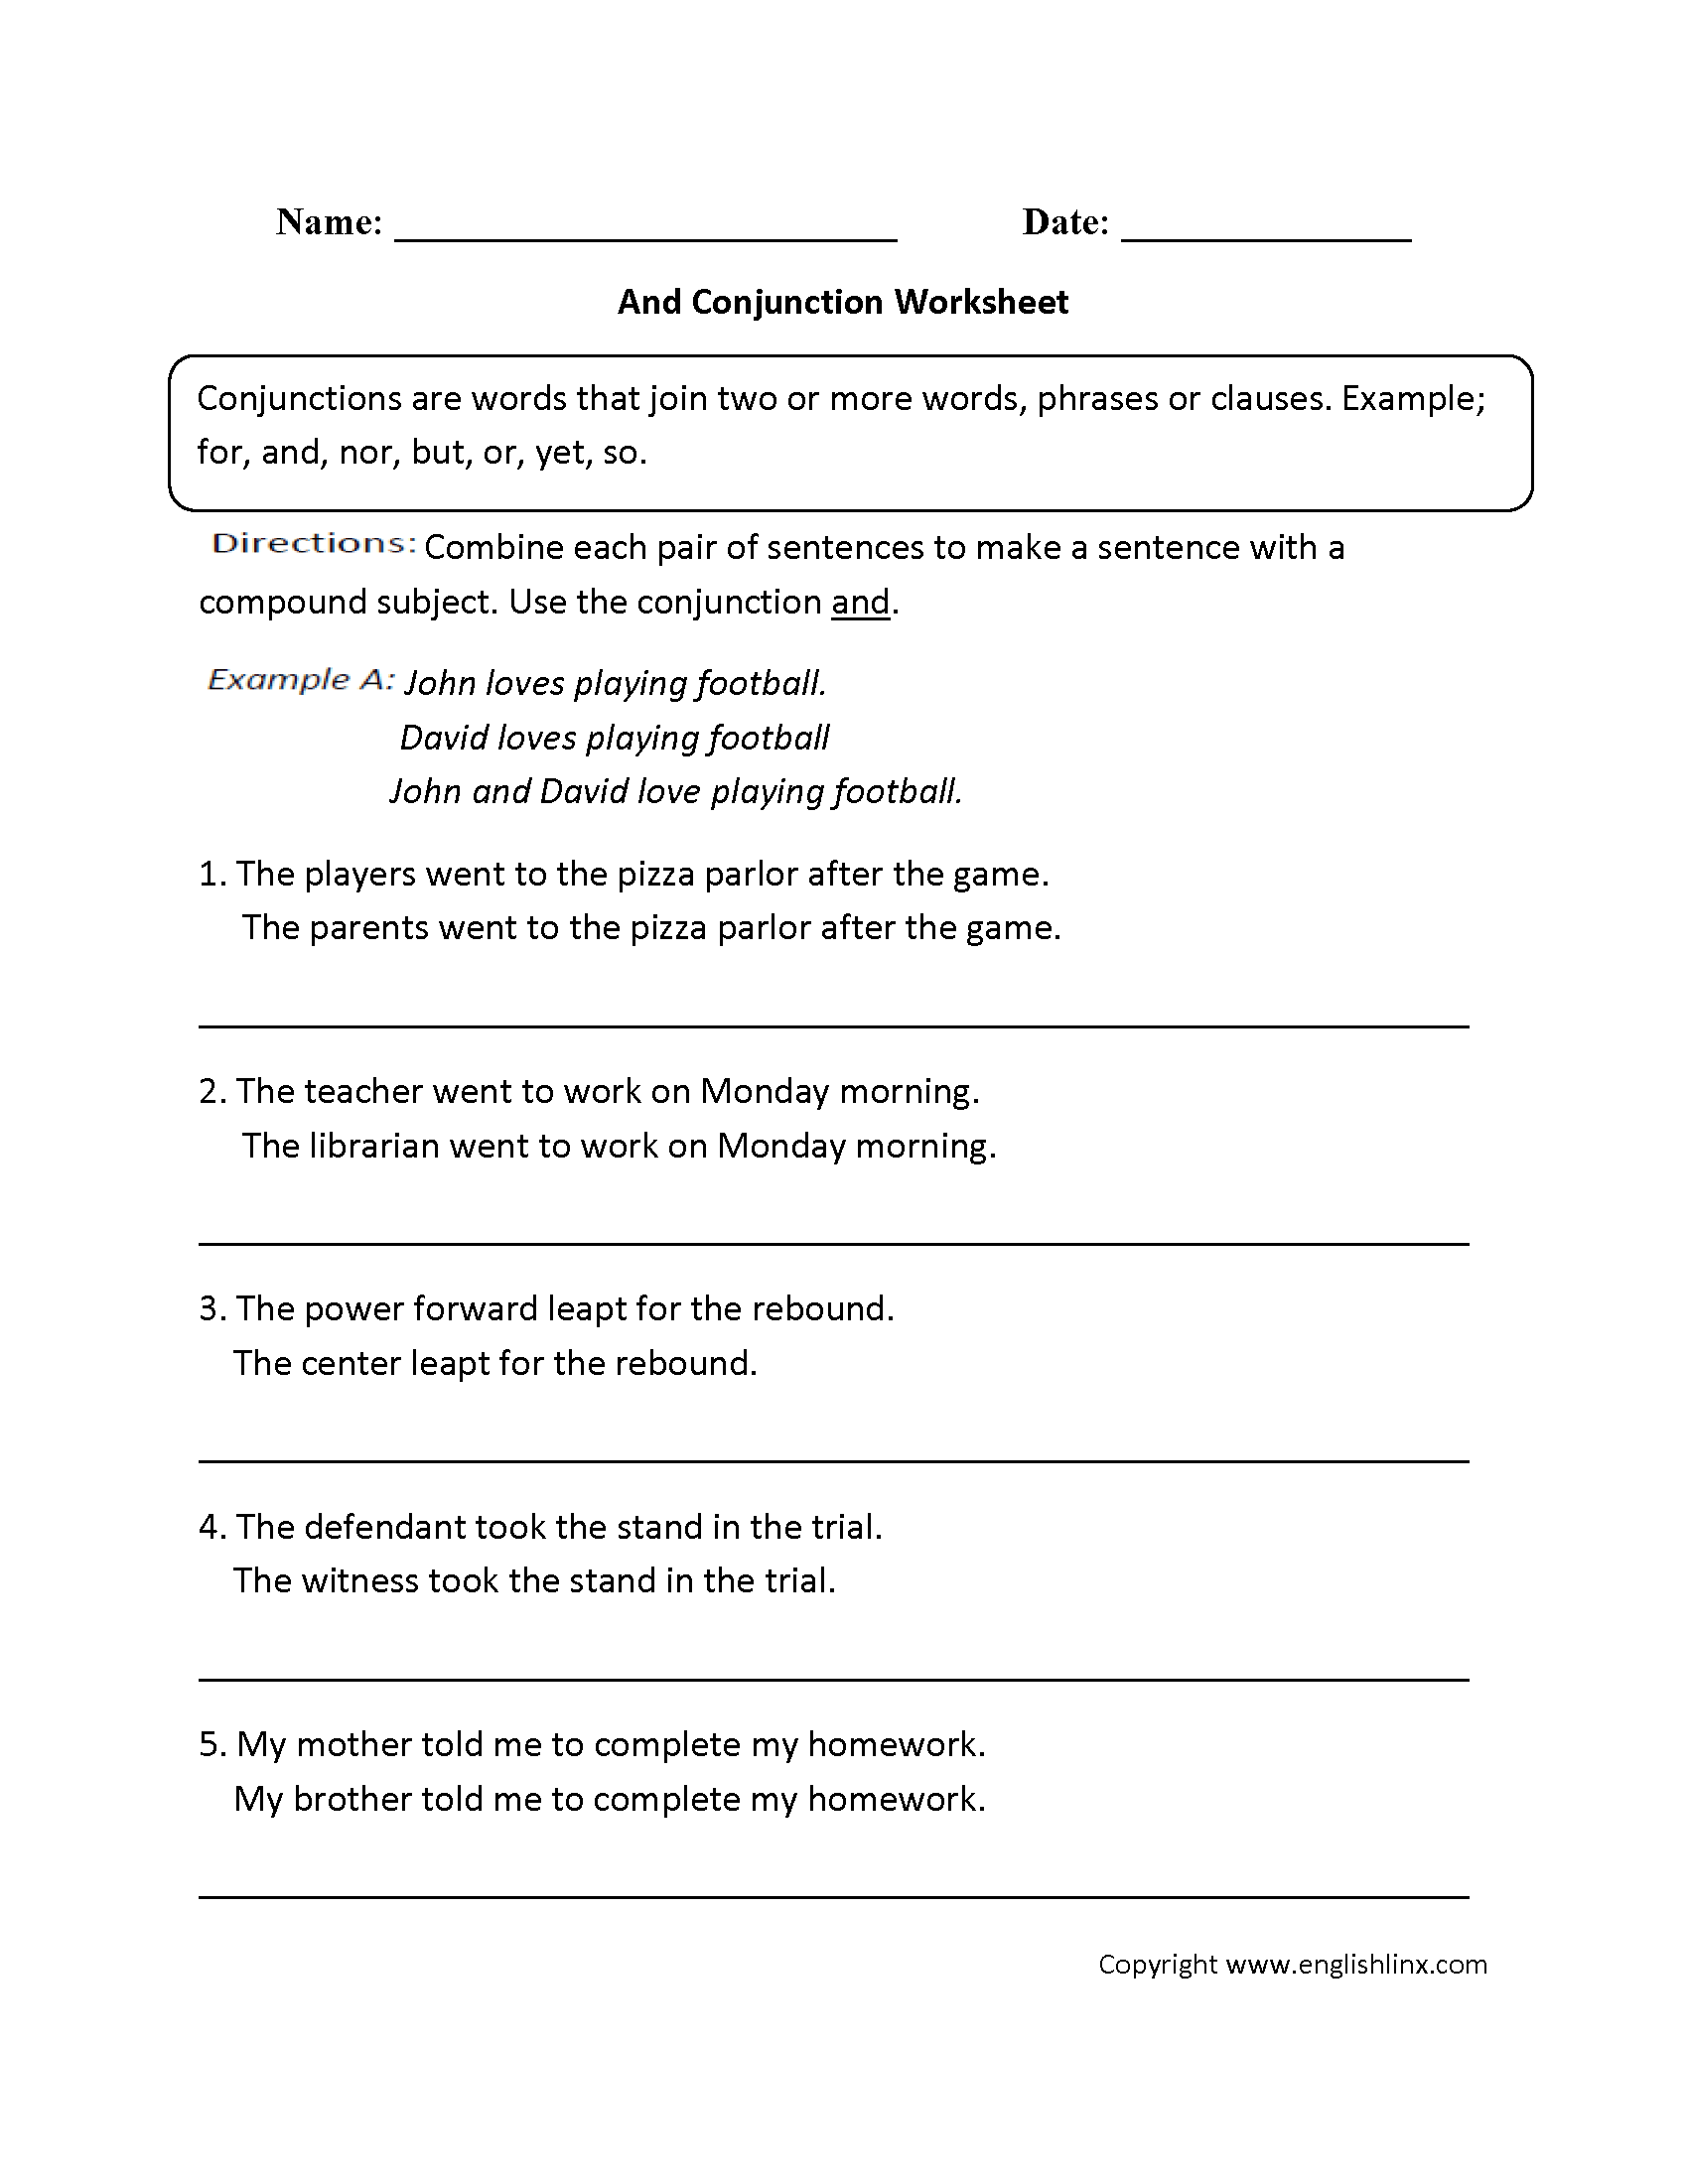 Conjunctions And Prepositions Worksheets